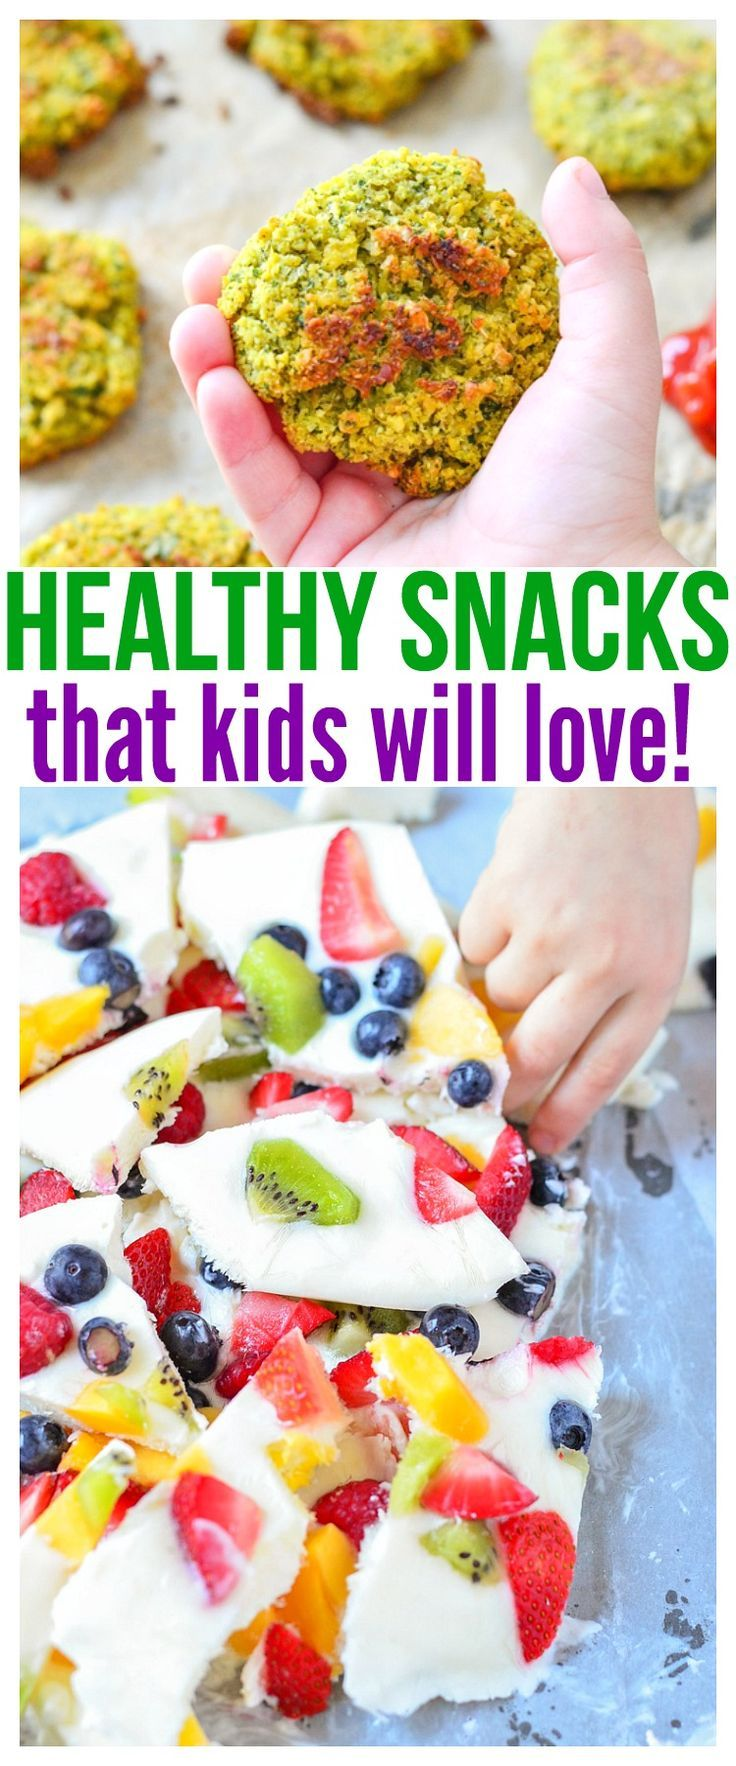 Whether you're looking for healthy snacks for kids on the go or healthy snacks for picky eaters at home, we have a ton of fun kid friendly recipes in this food round up that will definitely get praise from parents and kiddos!